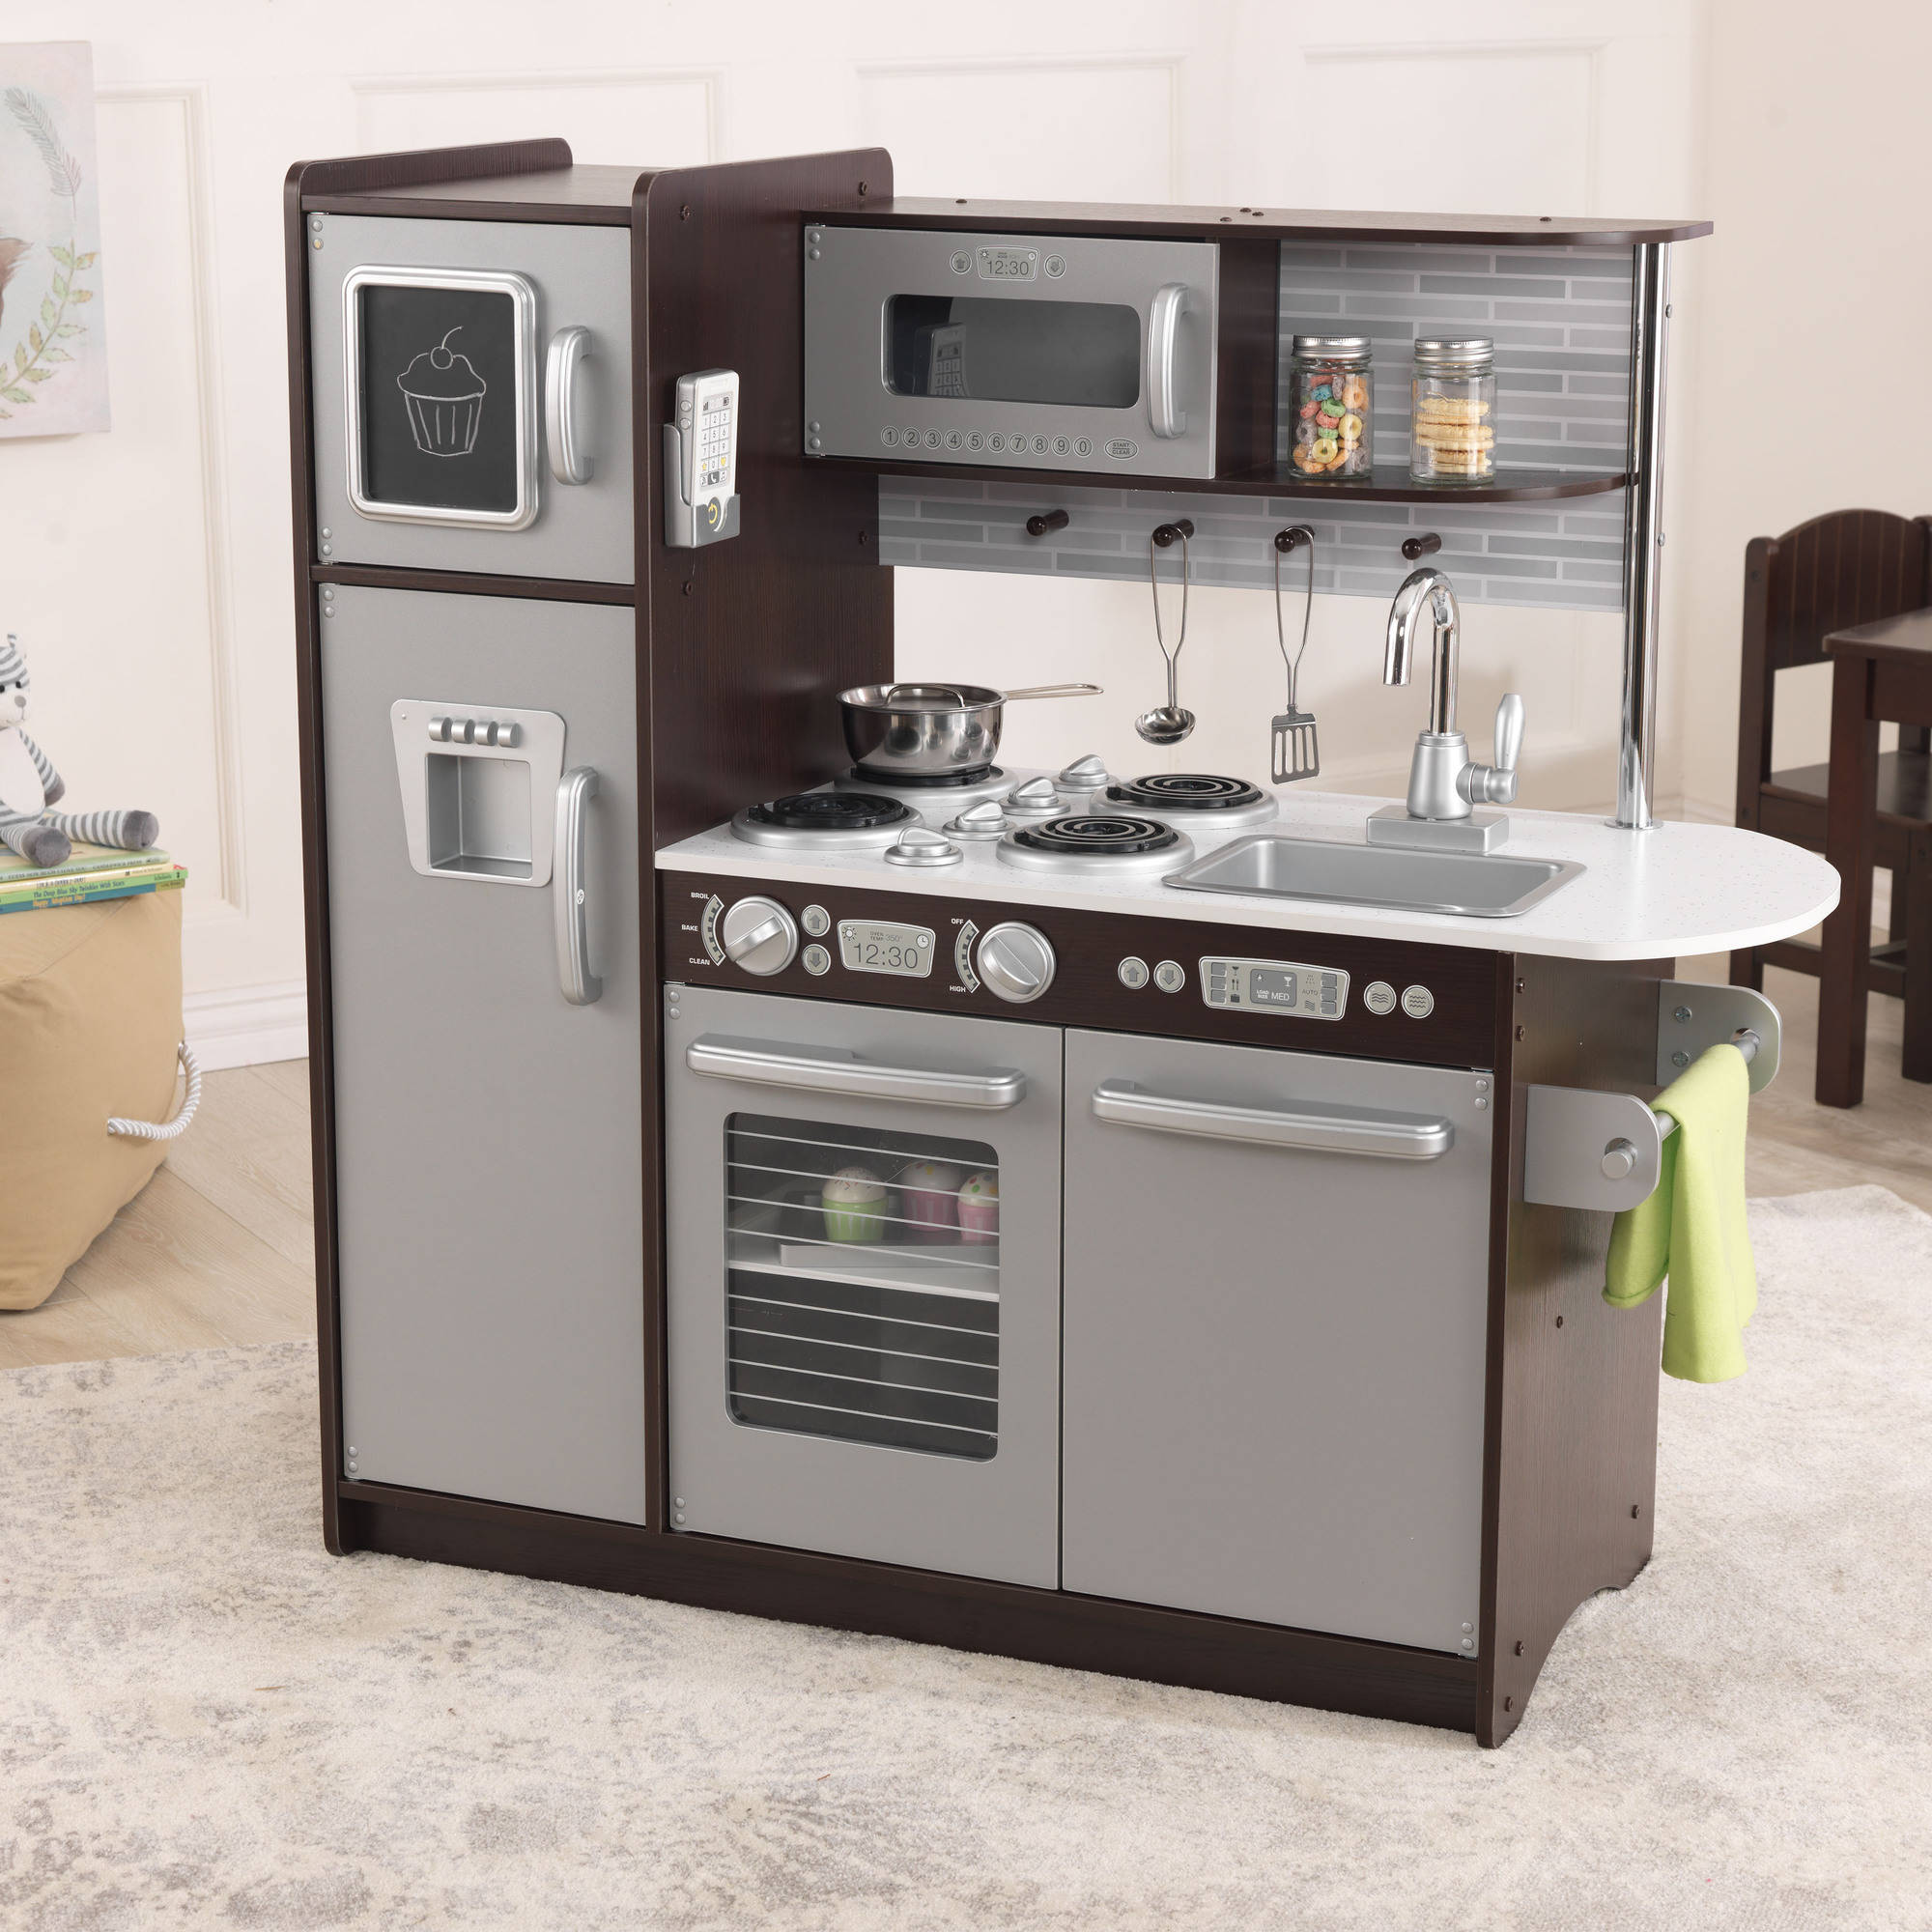 Wooden Play Kitchen kidkraft uptown wooden play kitchen, espresso - walmart